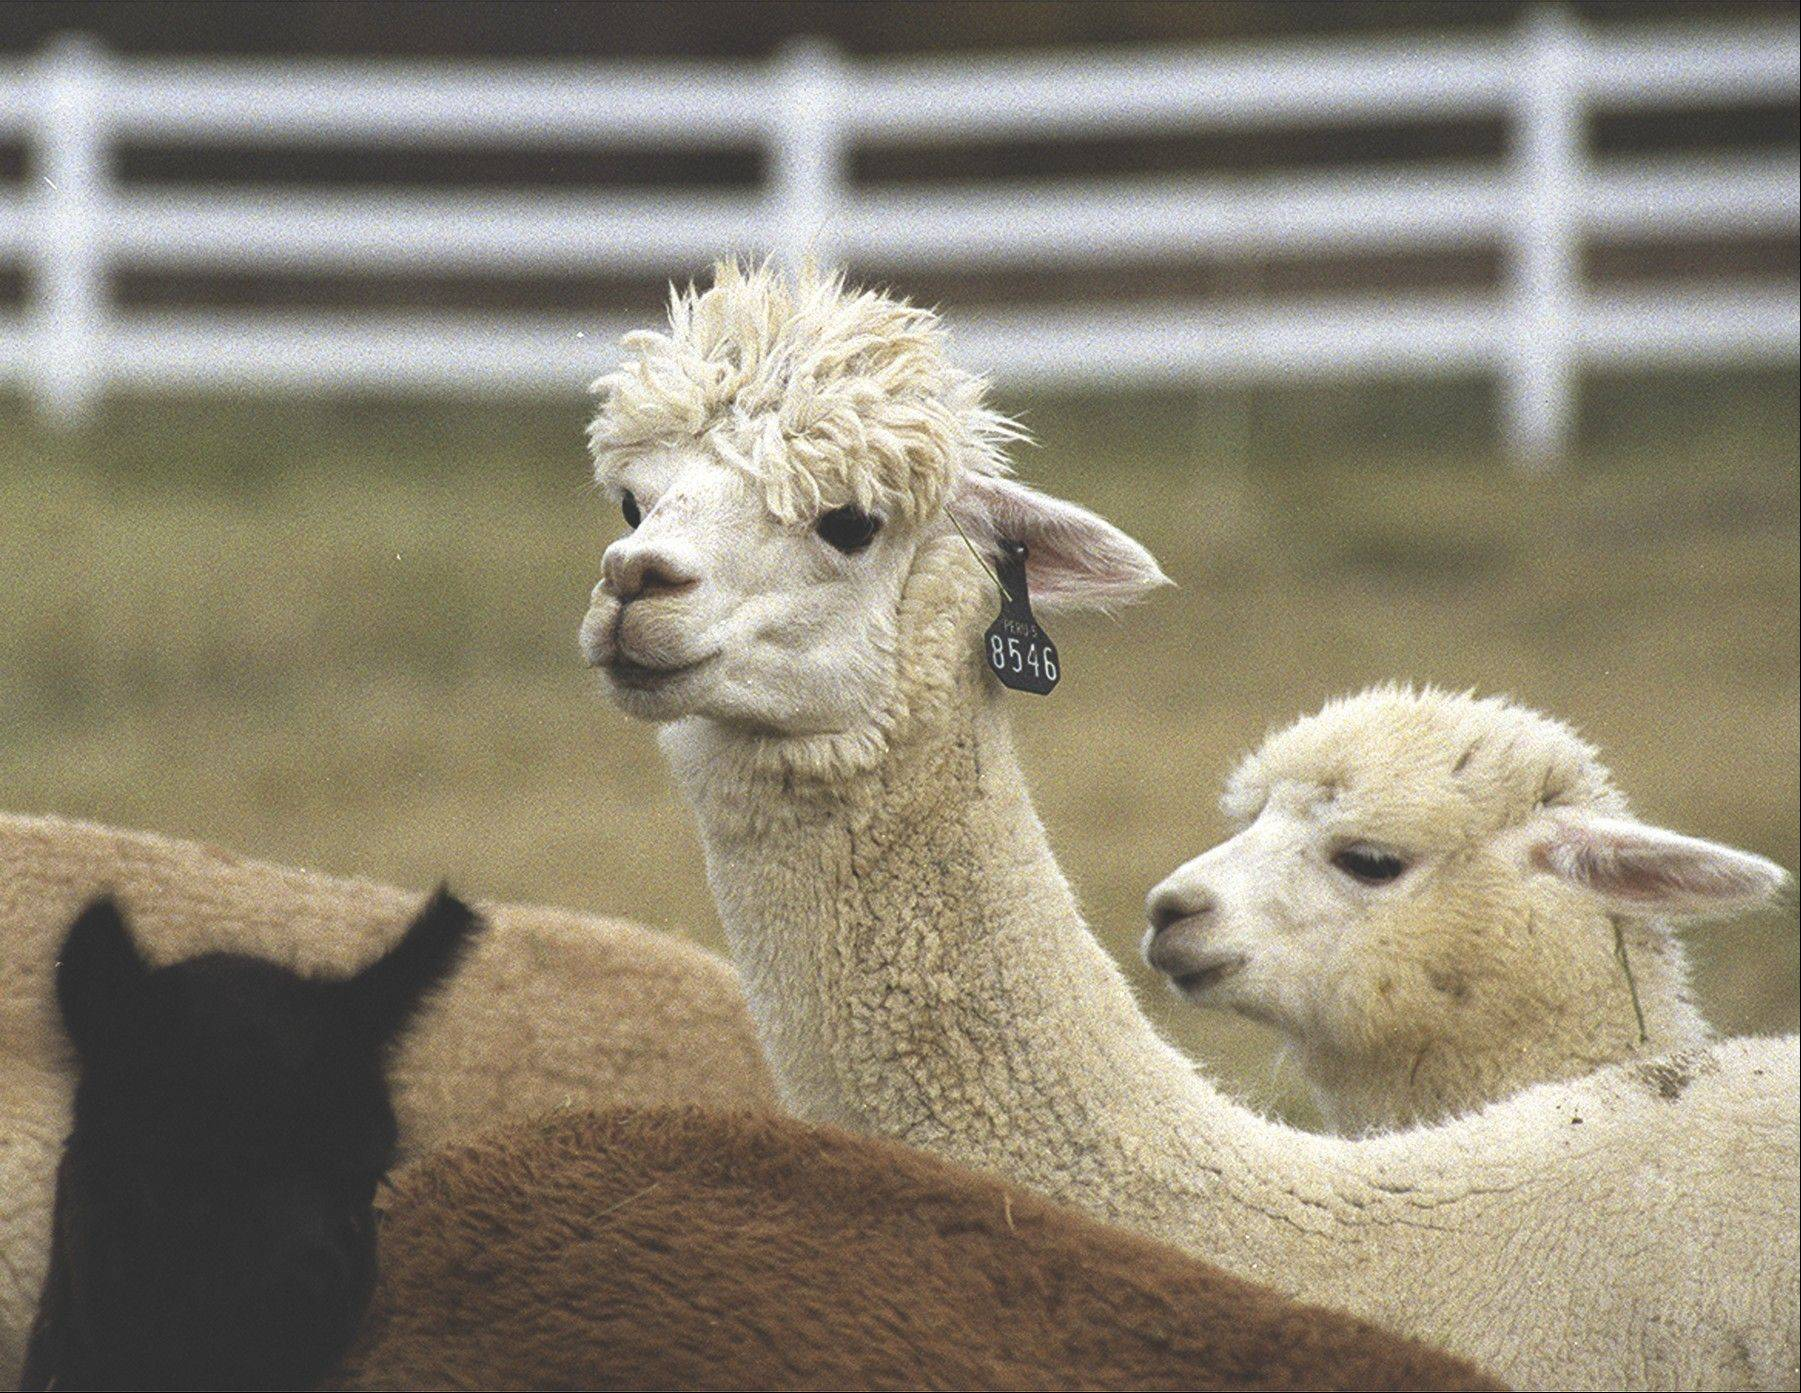 The 2013 Illinois Alpaca Show takes place in Grayslake on Saturday and Sunday, Oct. 26-27.